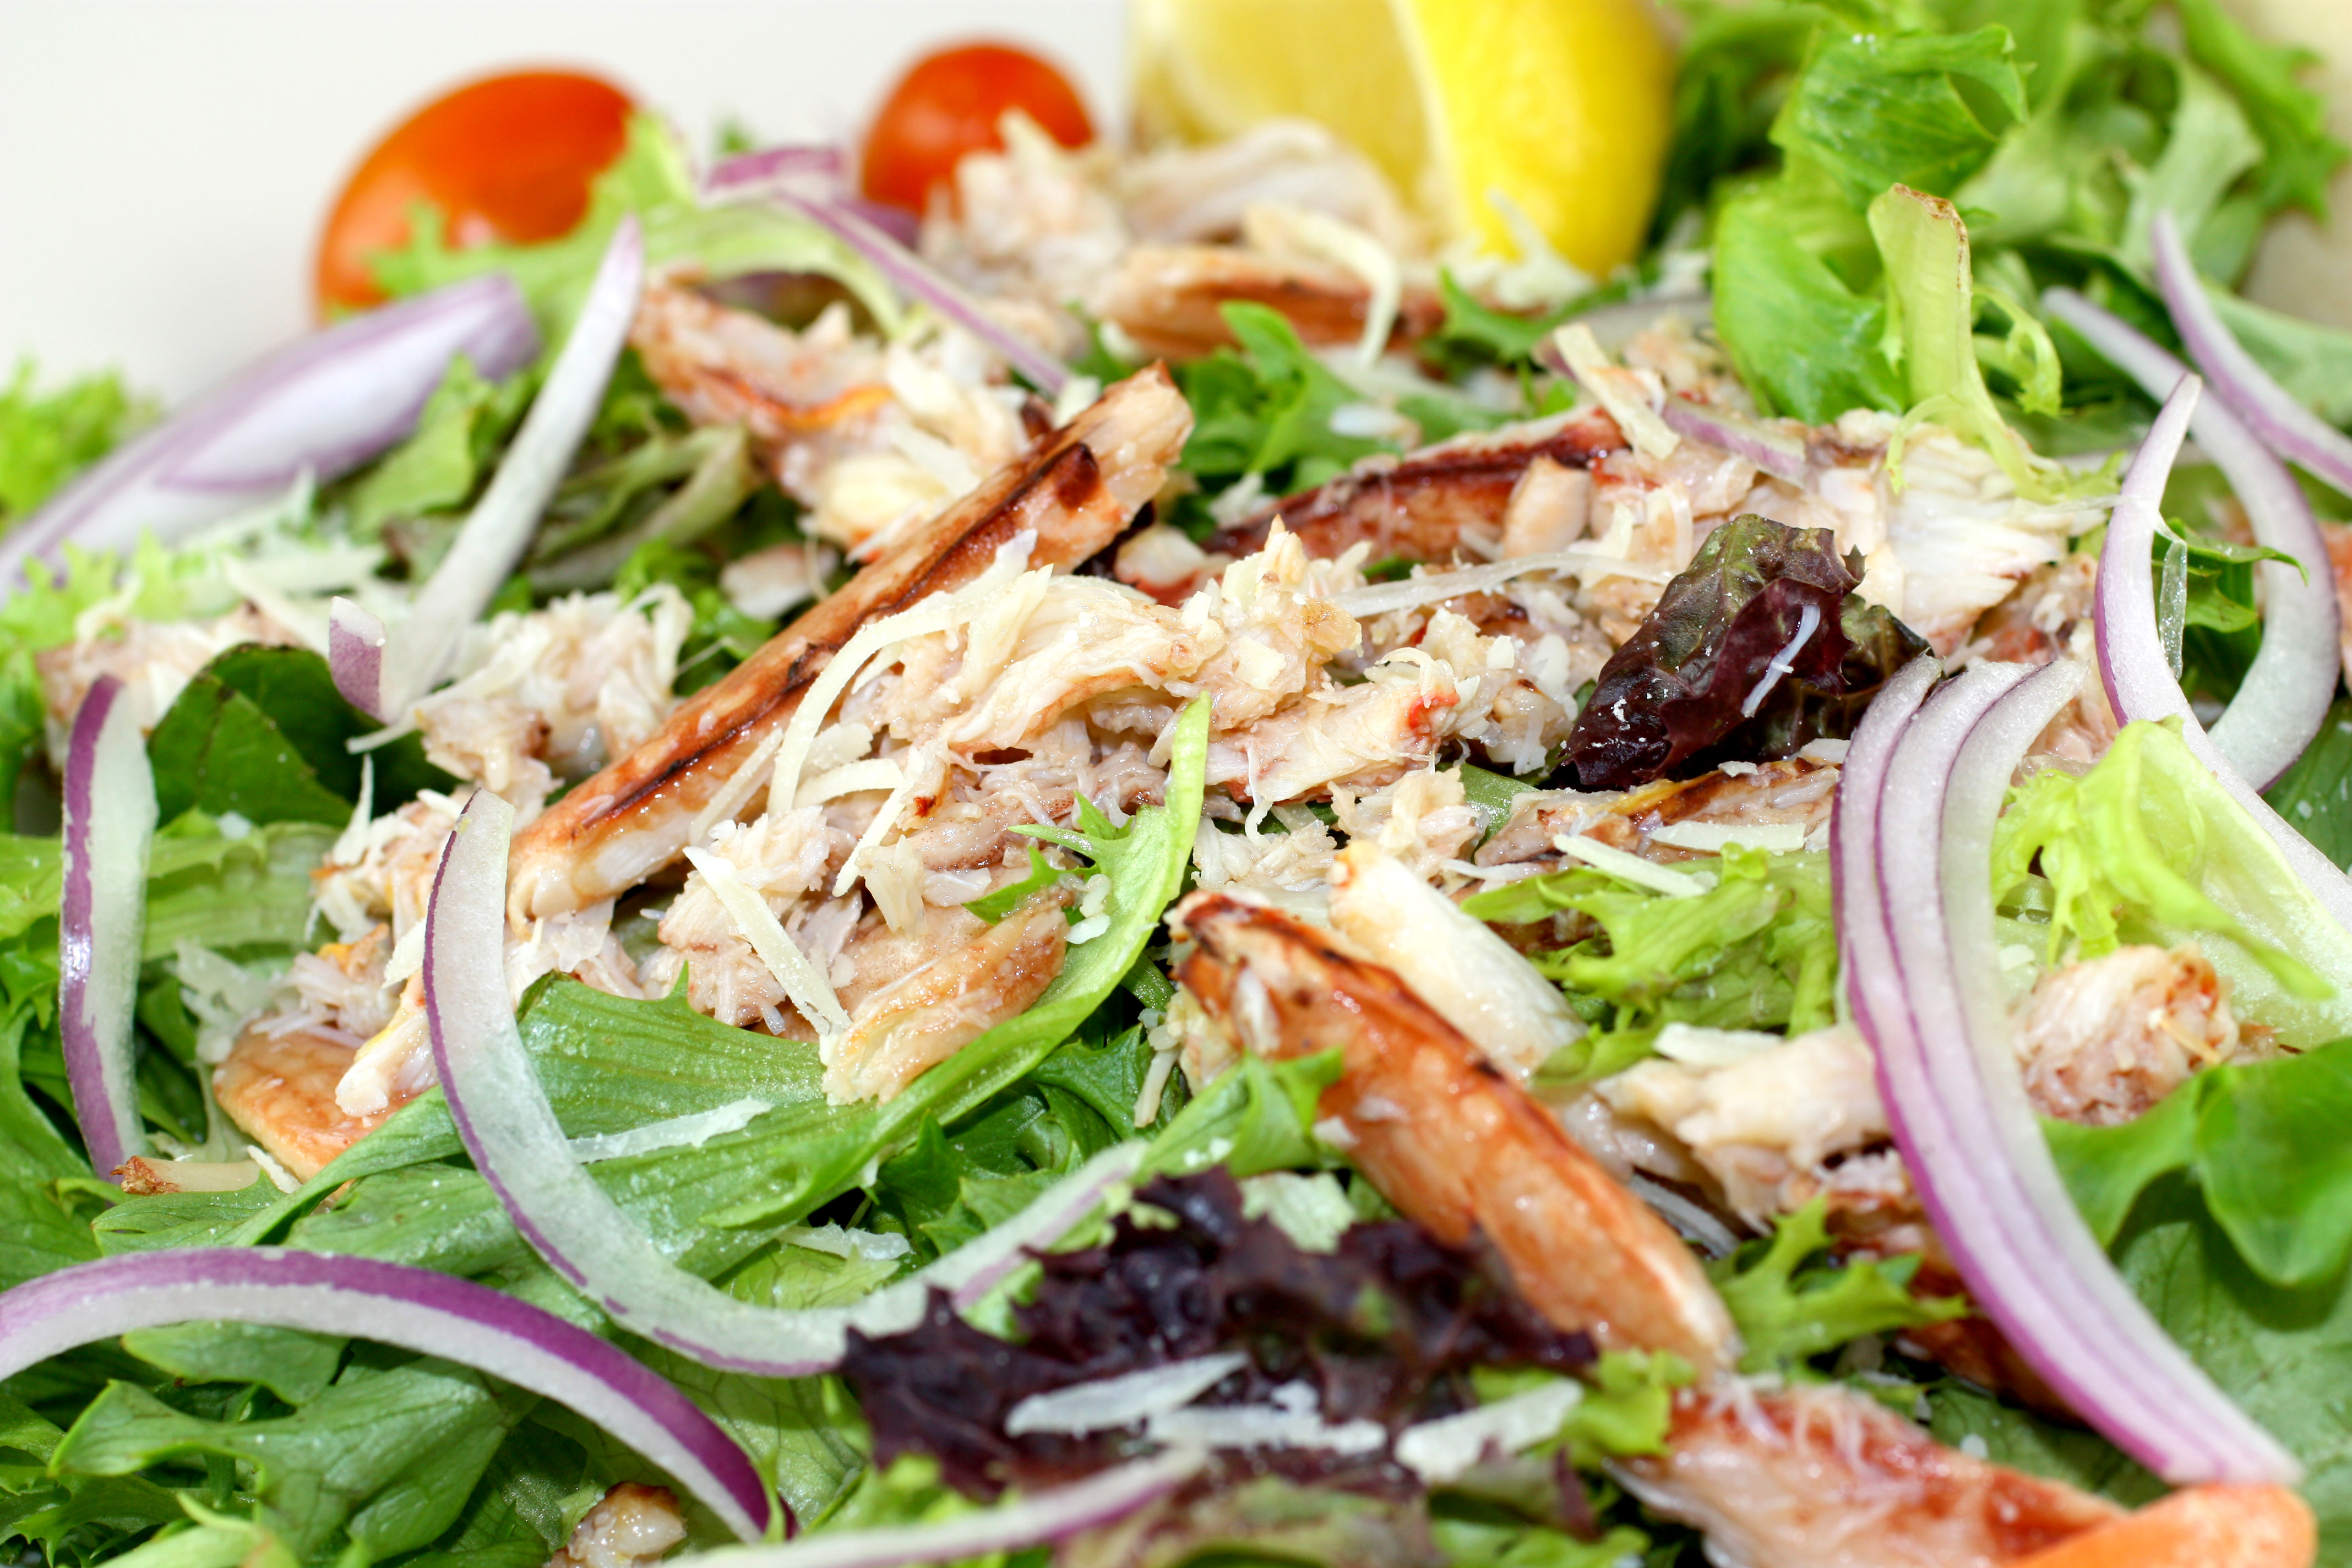 Real Crab Meat Salad from Fresh Off The Hook Seafood Restaurant, Boise, Idaho